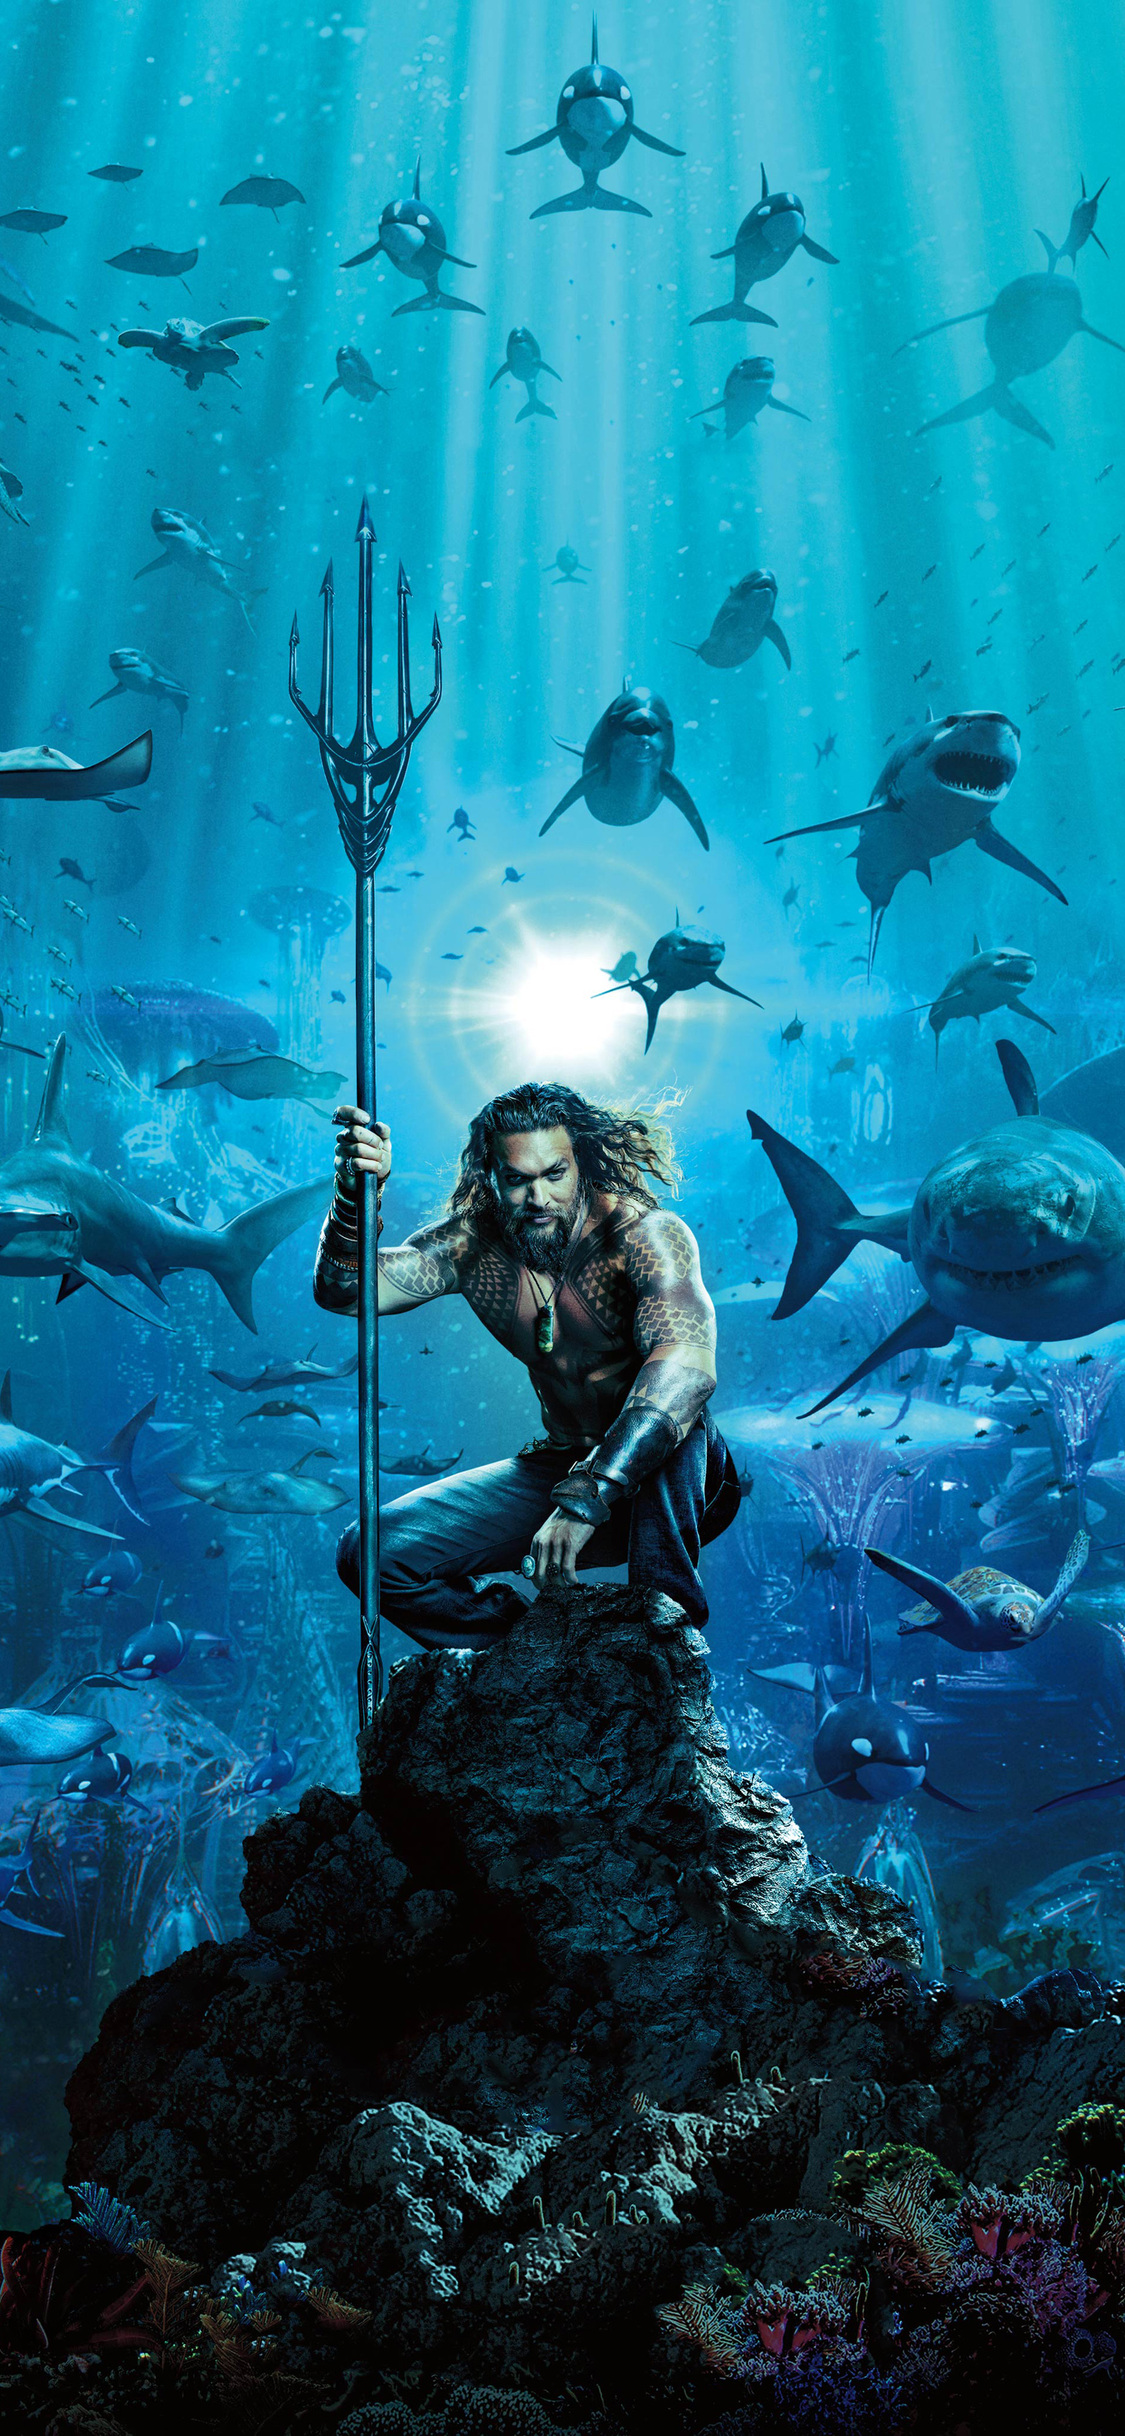 Aquaman Wallpaper Hd Aquaman Wallpaper For Iphone X